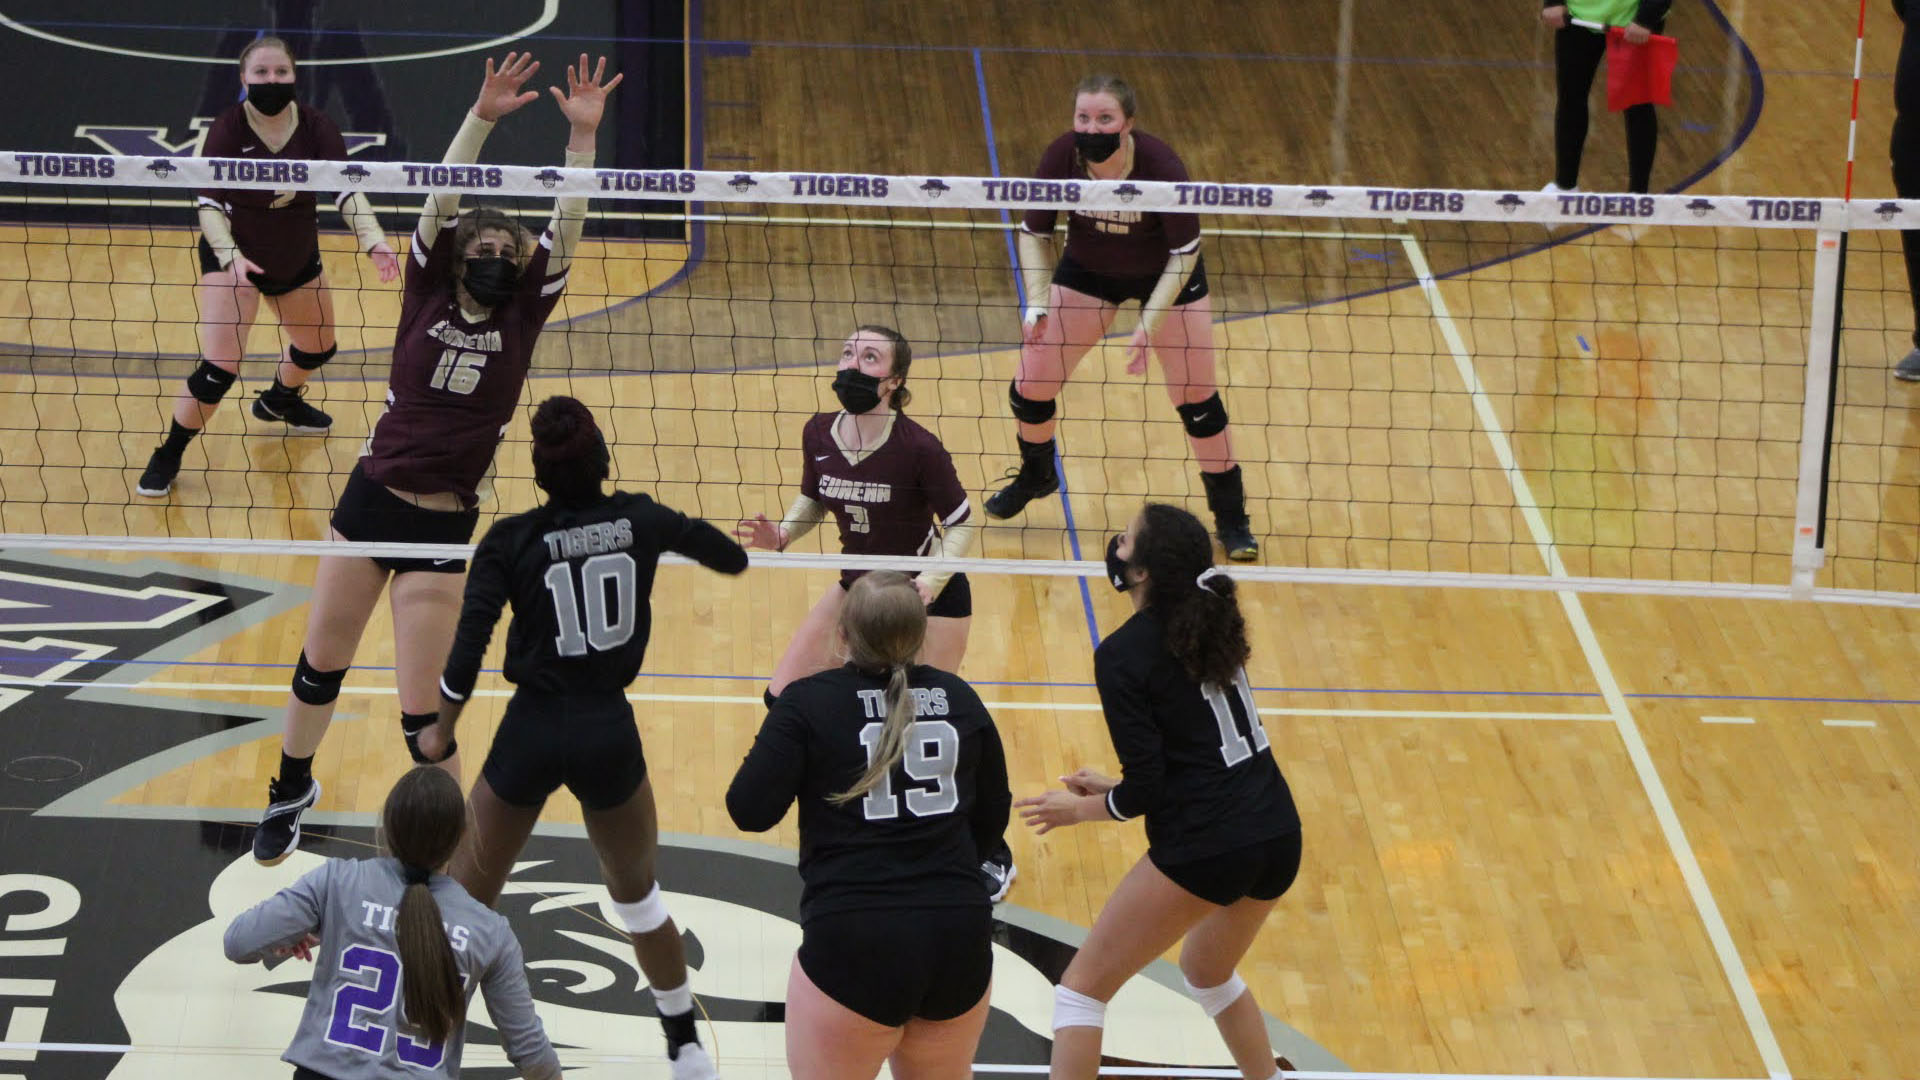 Eureka Volleyball Falls at Fontbonne, 3-0